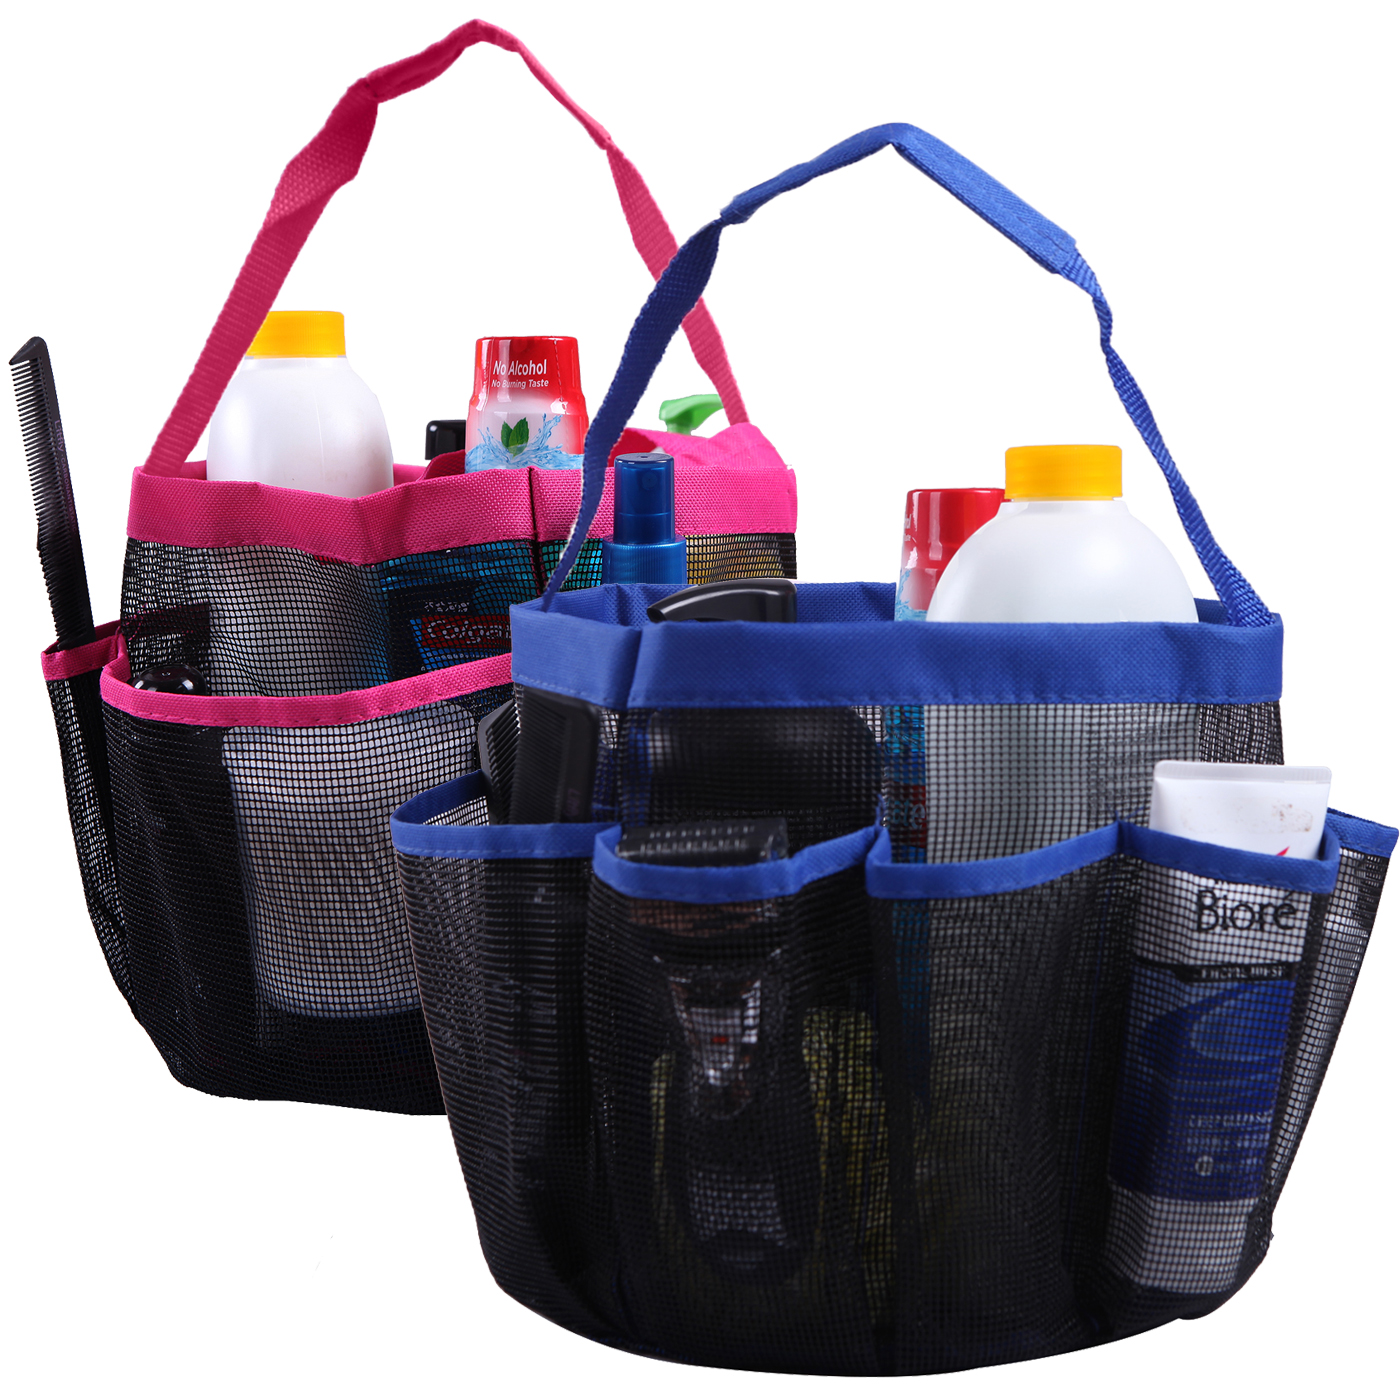 HDE Shower Caddy Mesh Bag College Dorm Bathroom Carry Tote Hanging Organizer 2 Pack... by HDE